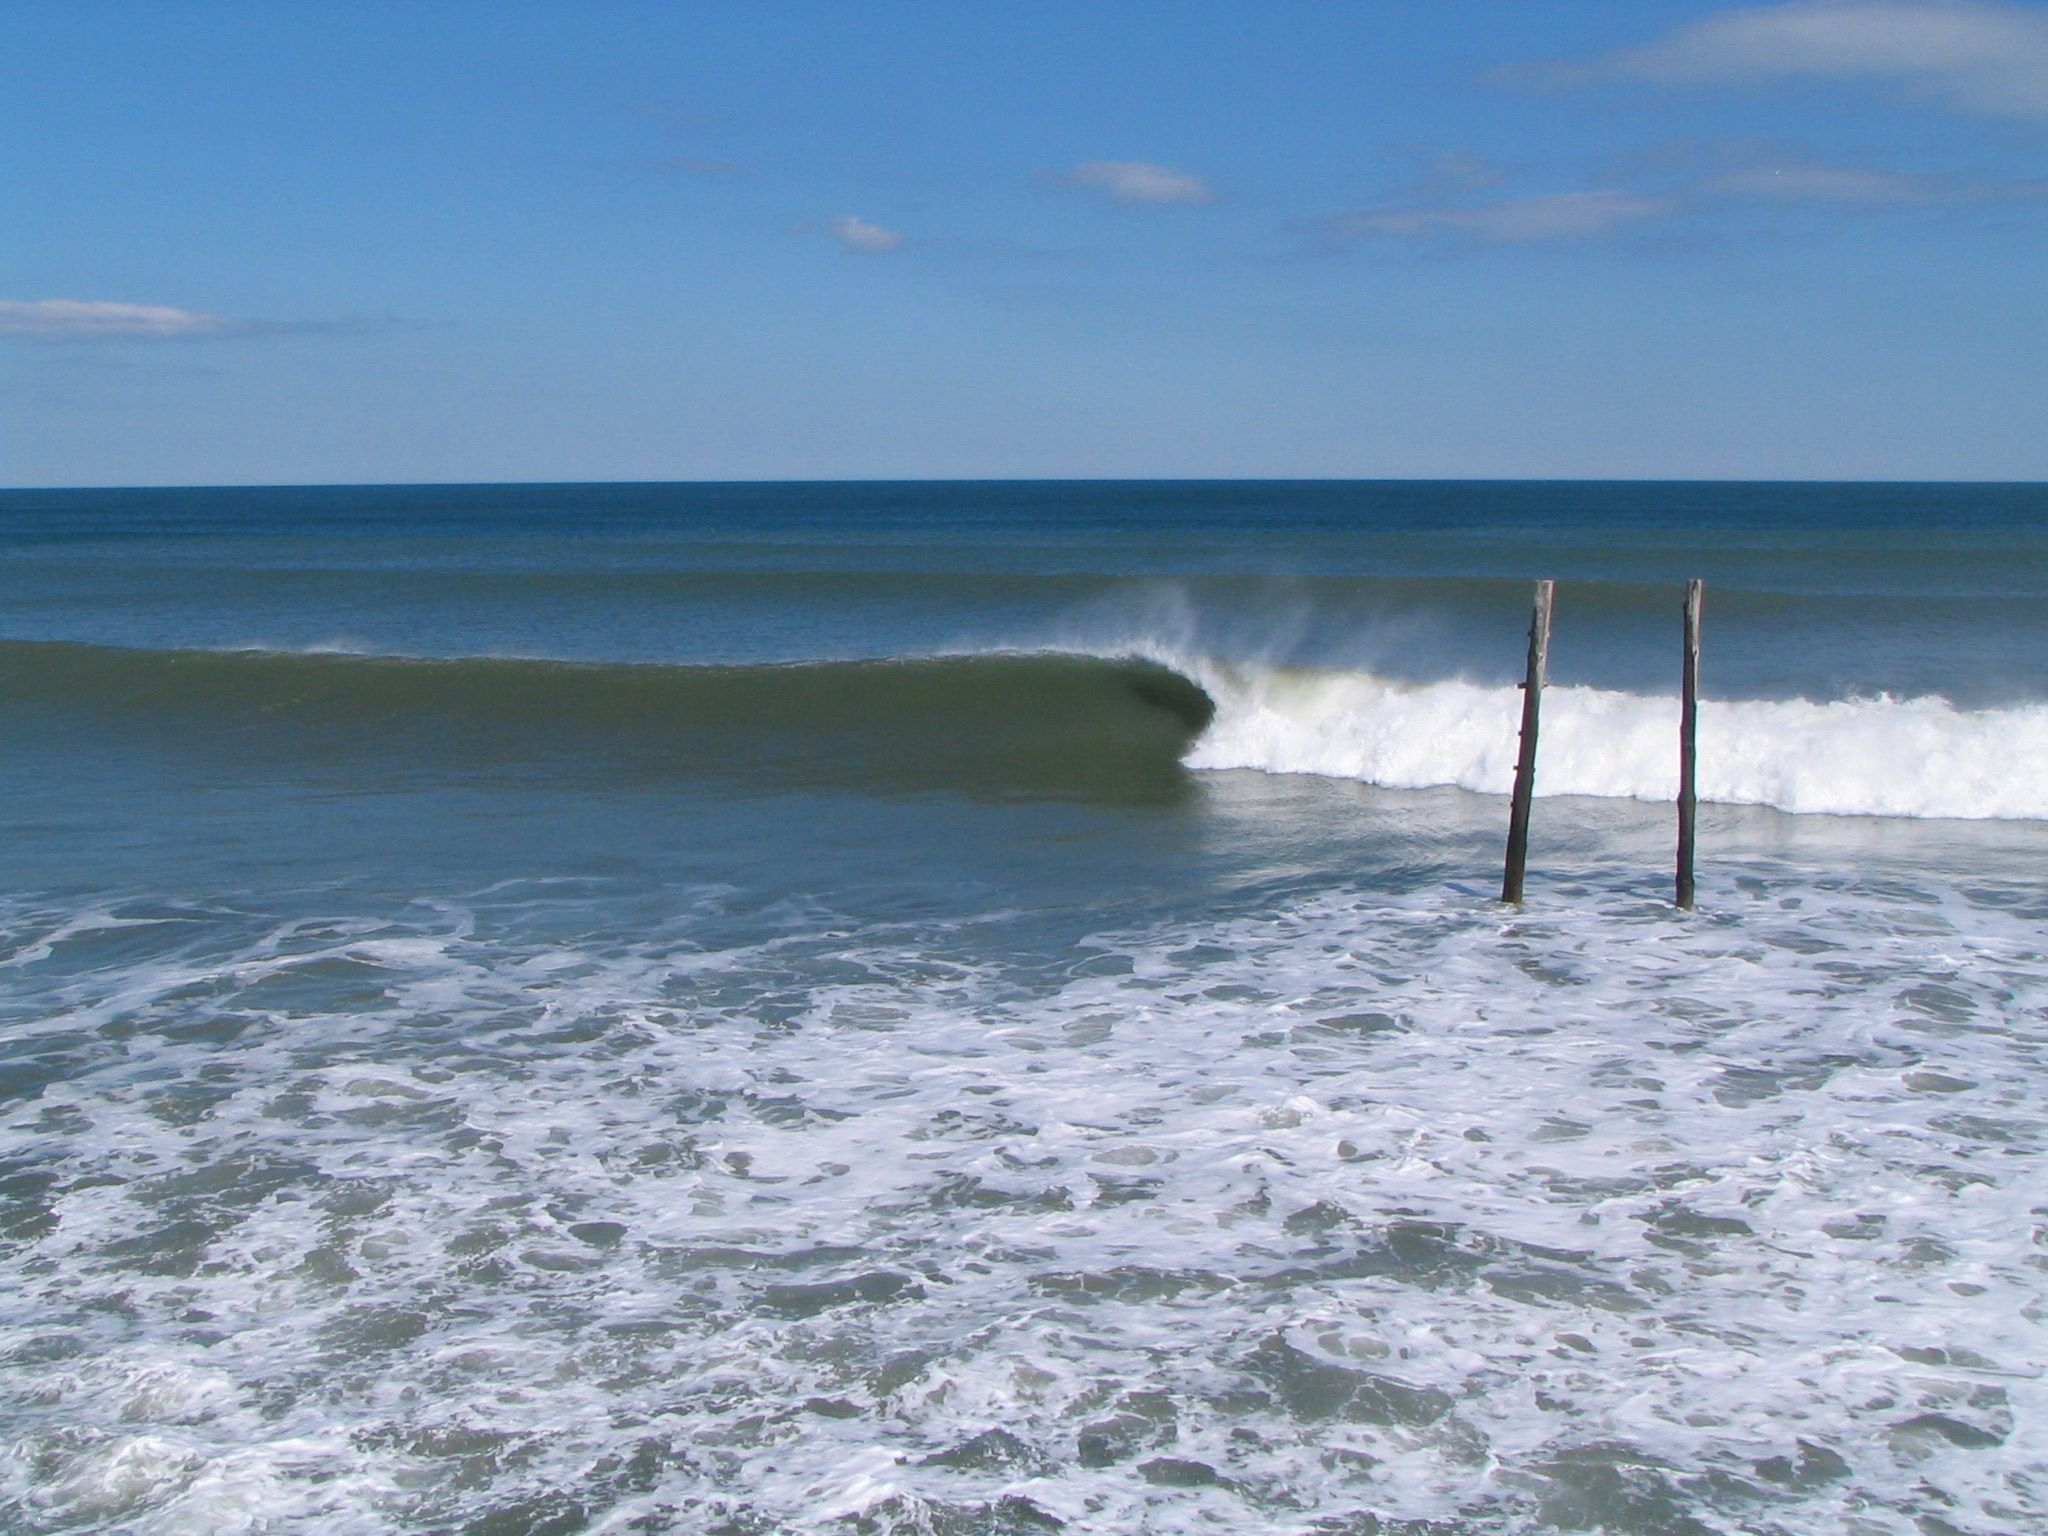 Winter Surf Kitty Hawk Pier No One Out California Summer Surfing California